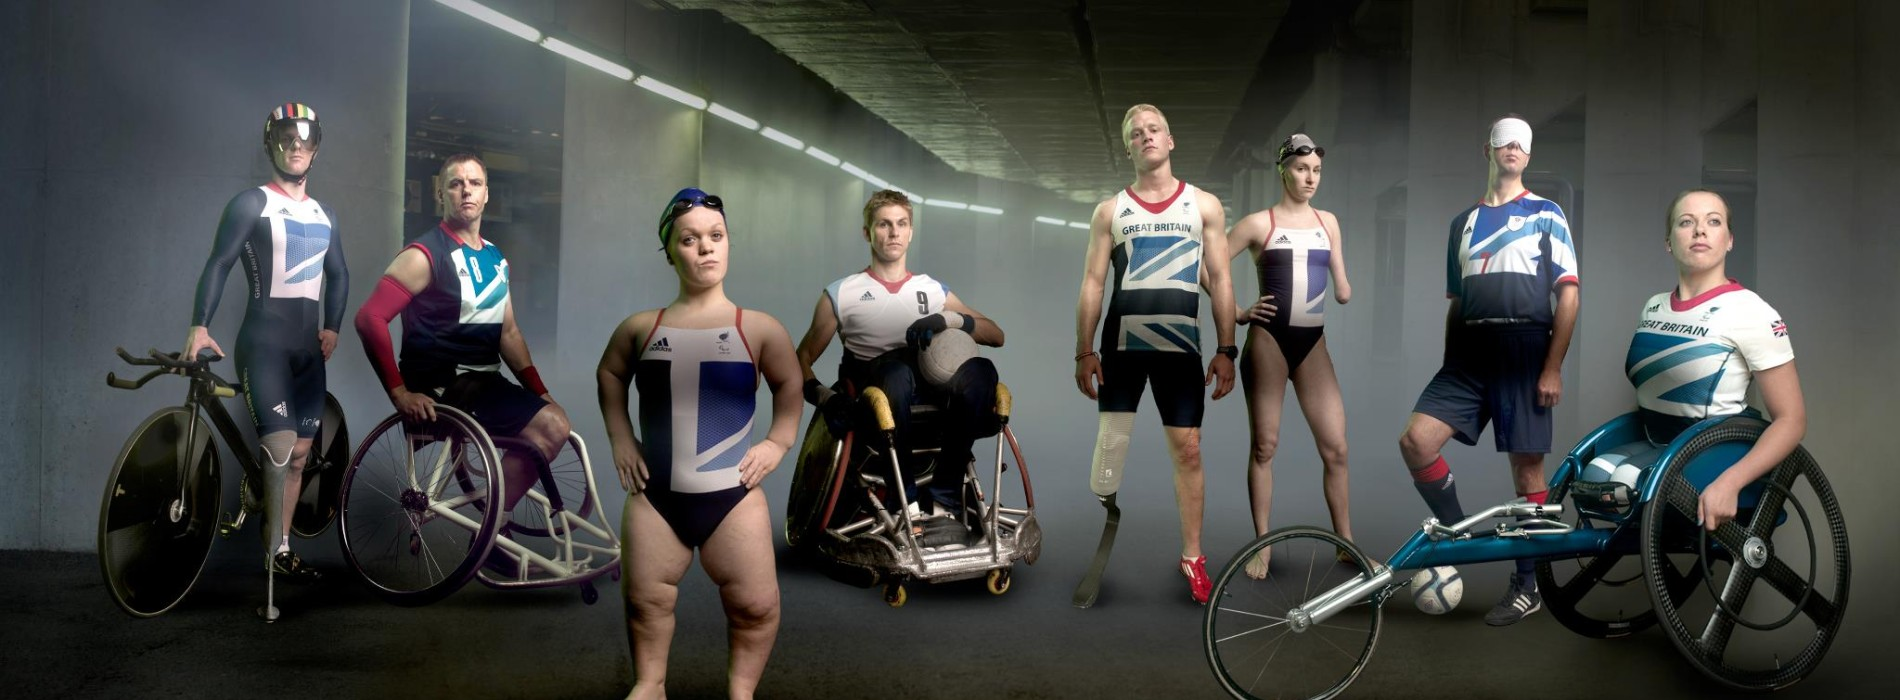 Paralympic Games 2012: Disability Horizons' definitive guide